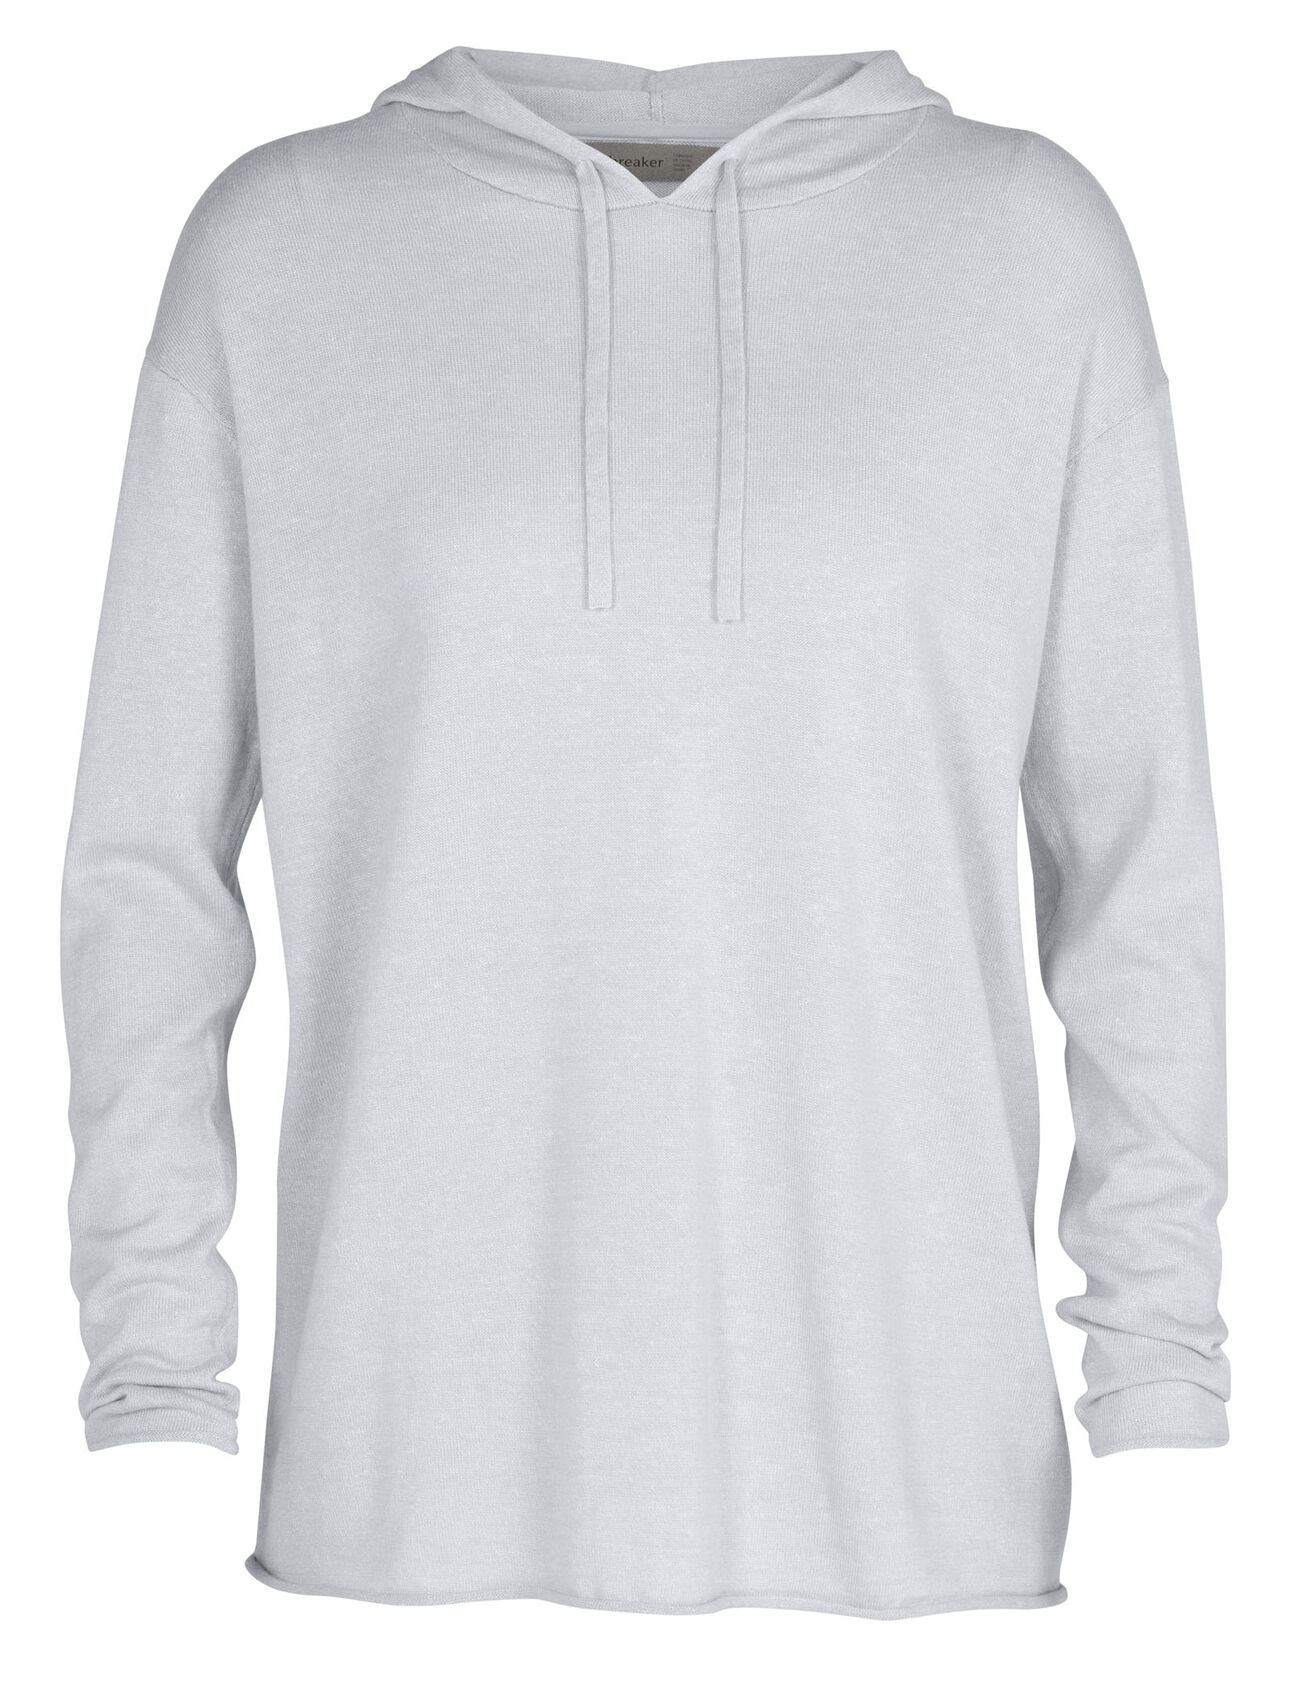 Merino Flaxen Long Sleeve Hooded Pullover Sweater